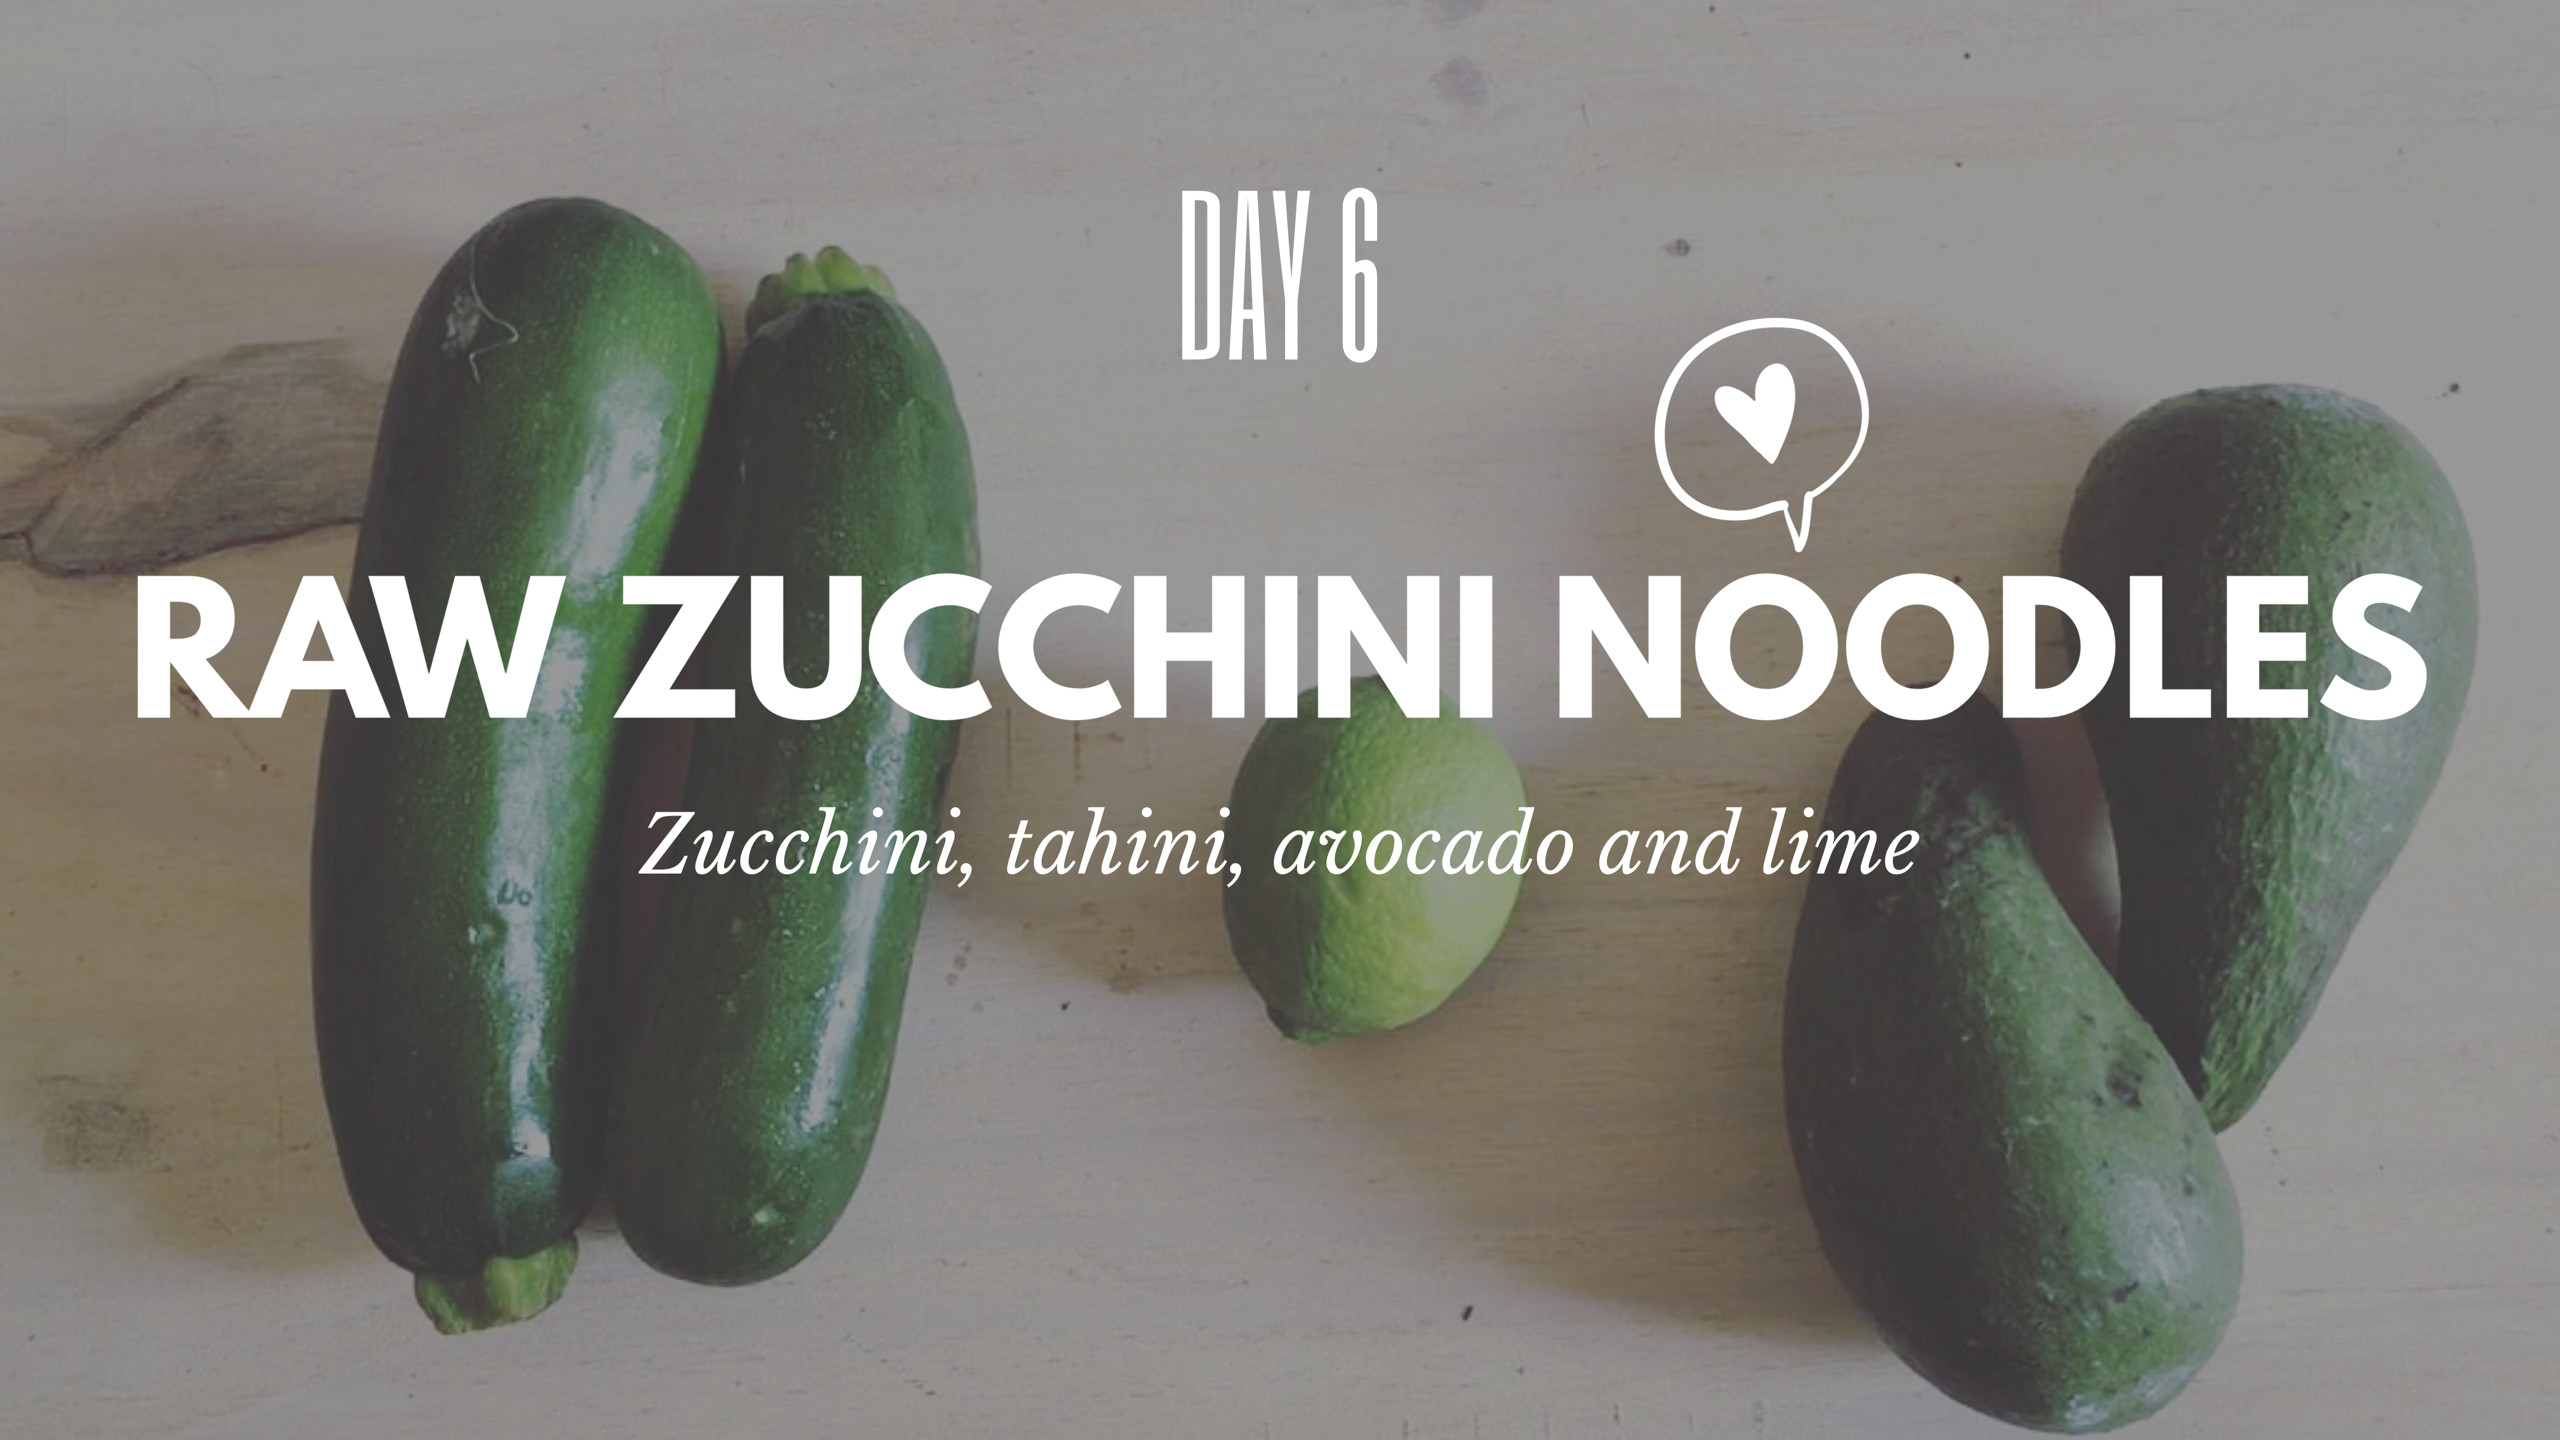 Zucchini noodles with lime and avo